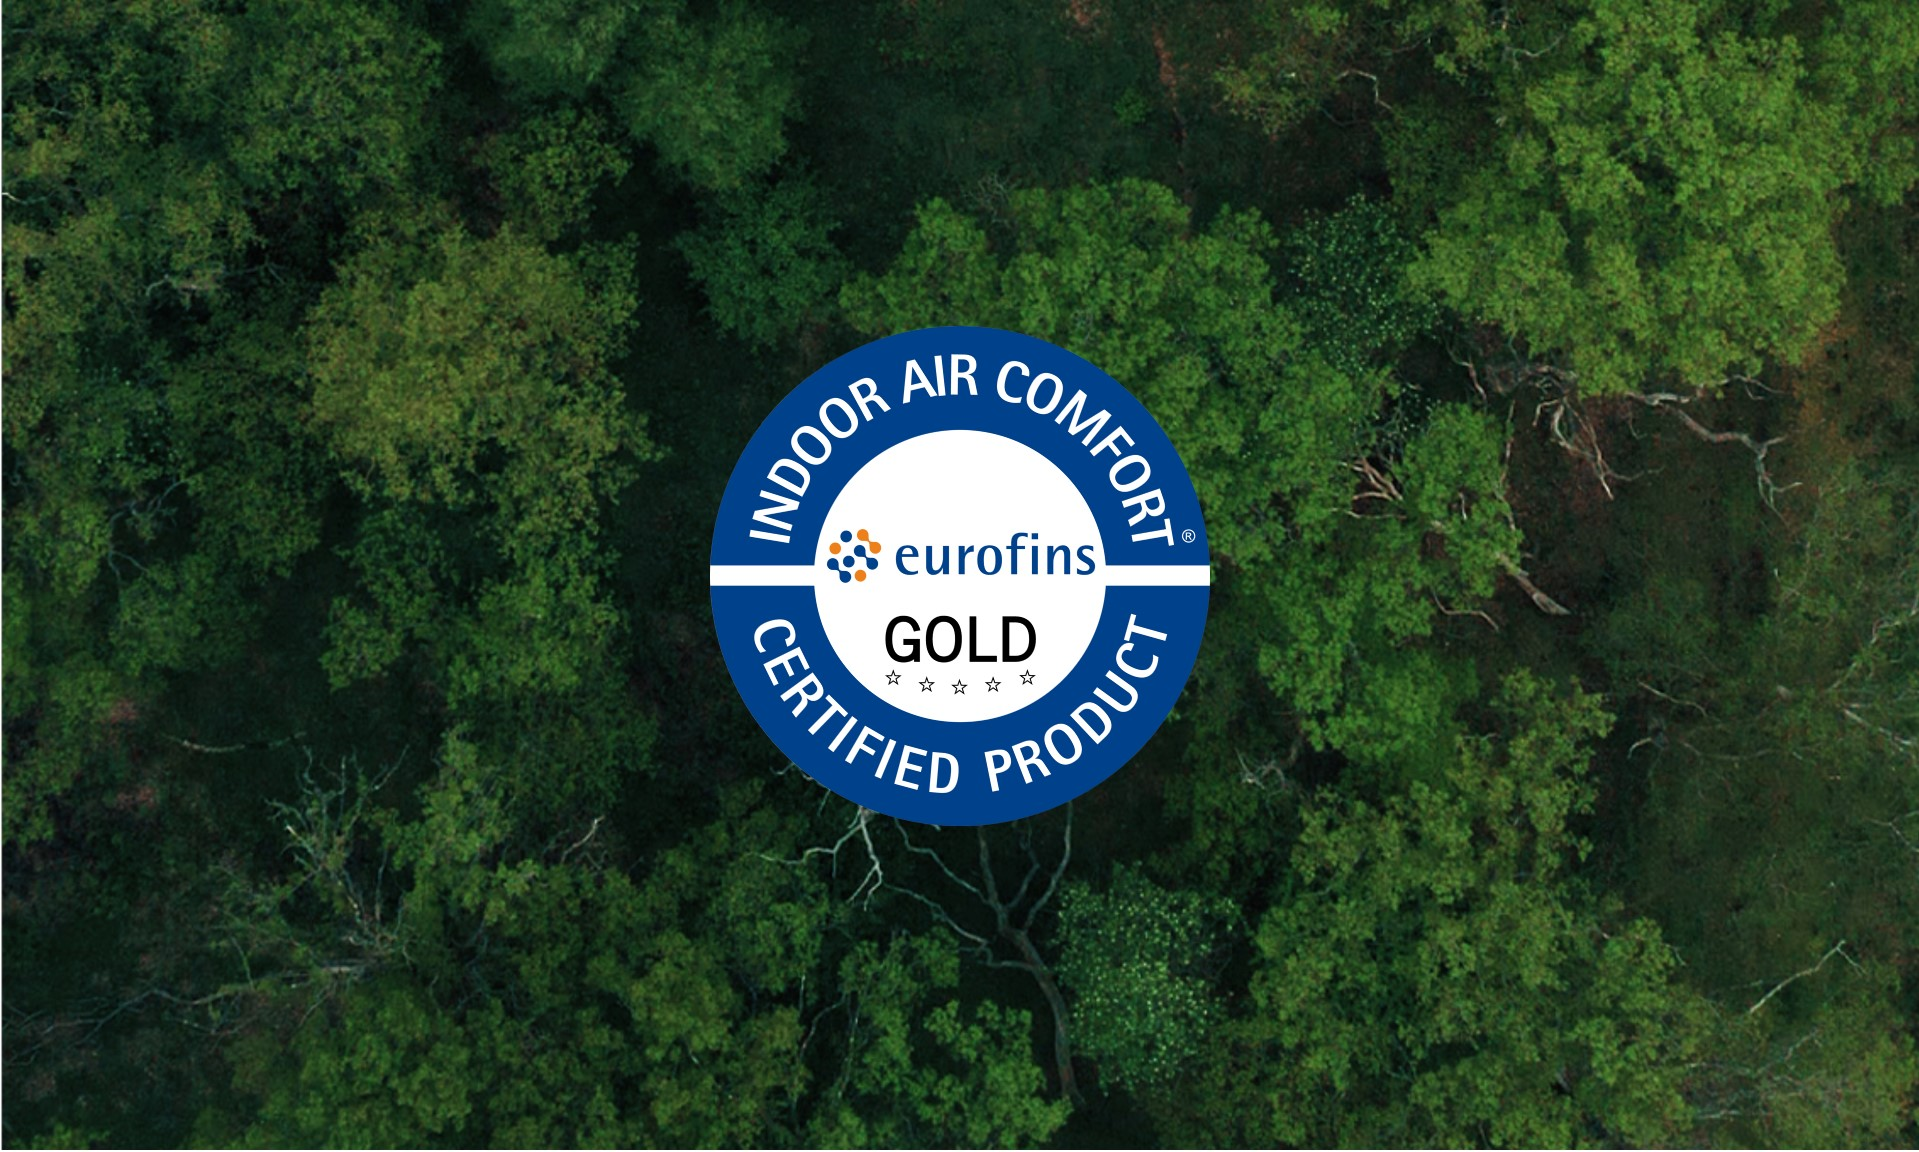 Hørning Parket is Eurofins Indoor Air Comfort Gold certified